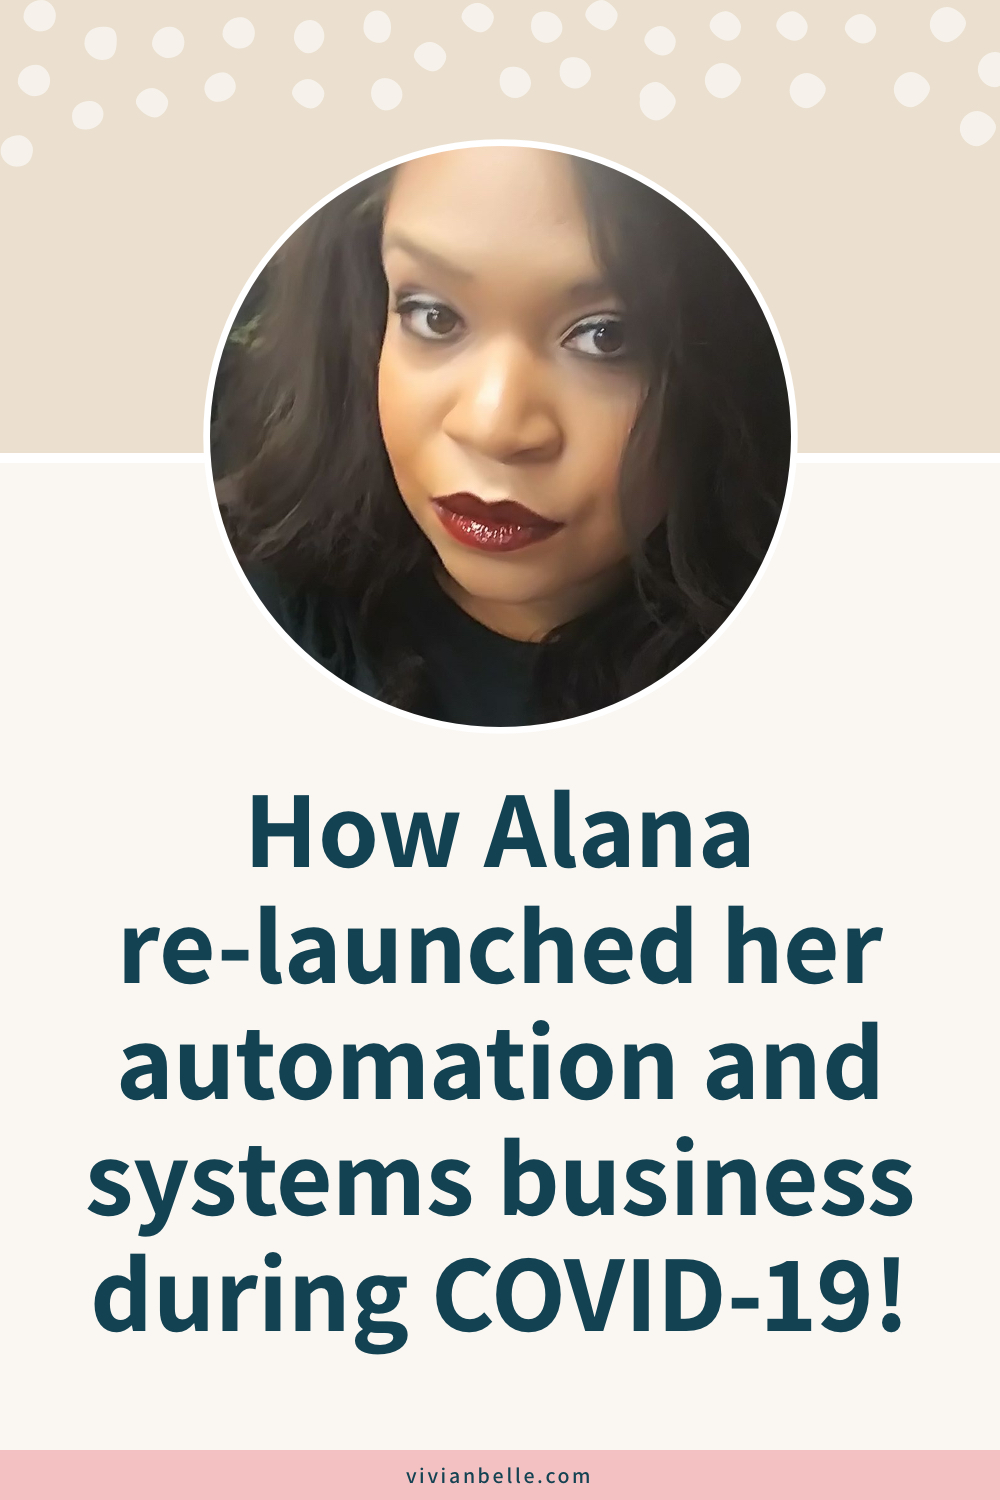 How Alana re-launched her automation and systems business during COVID-19